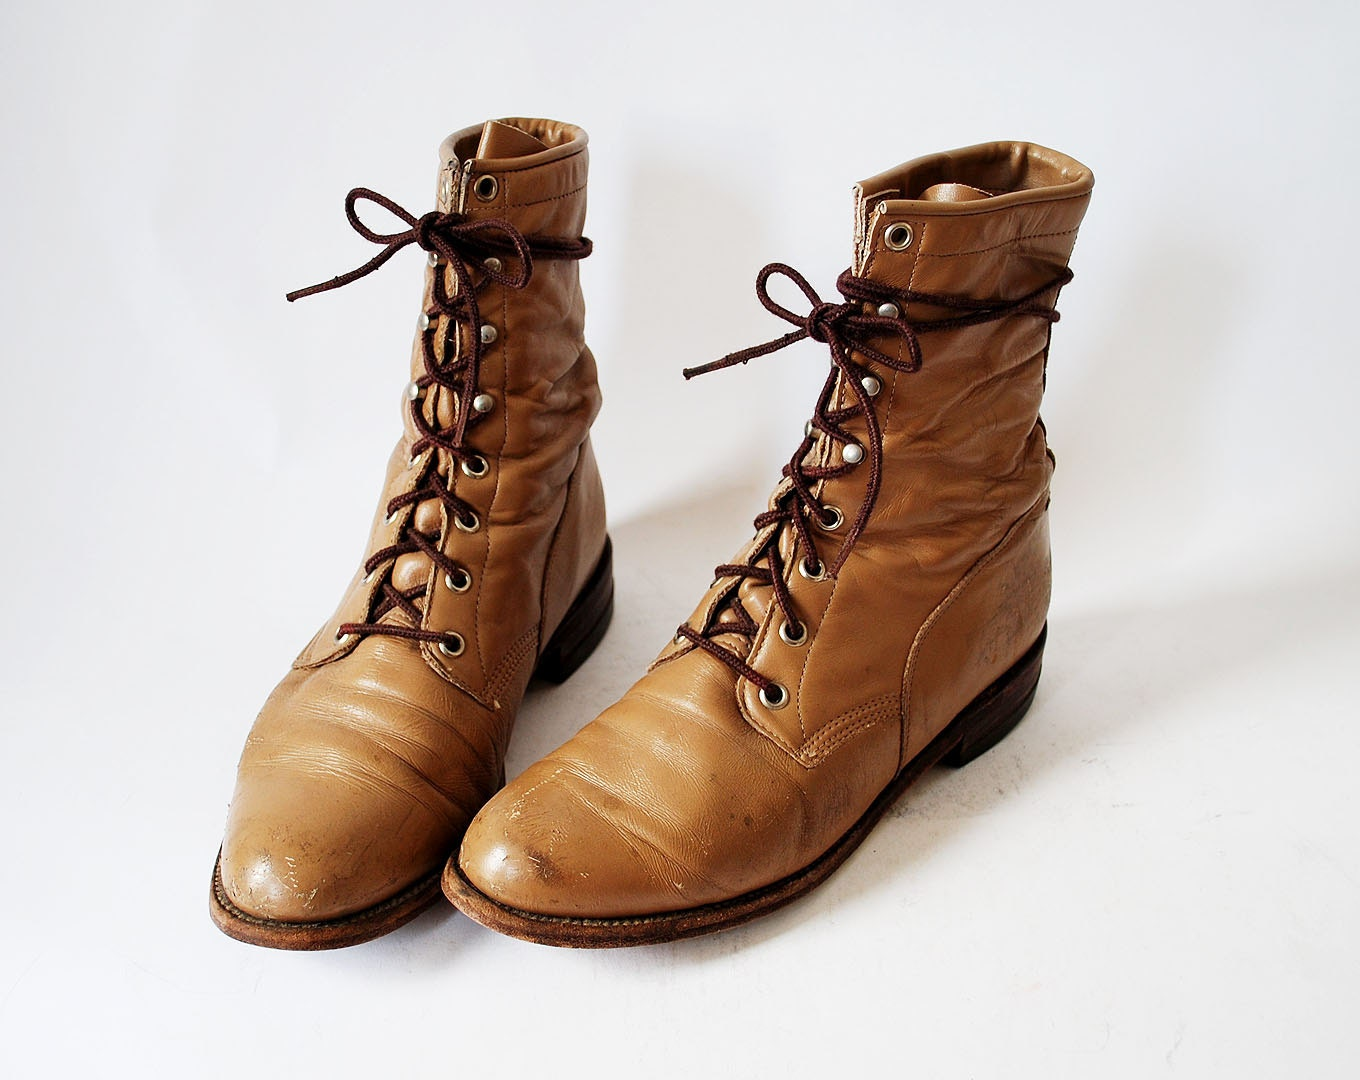 Vintage Justin Lace Up Riding Boots Beige Leather Size 9